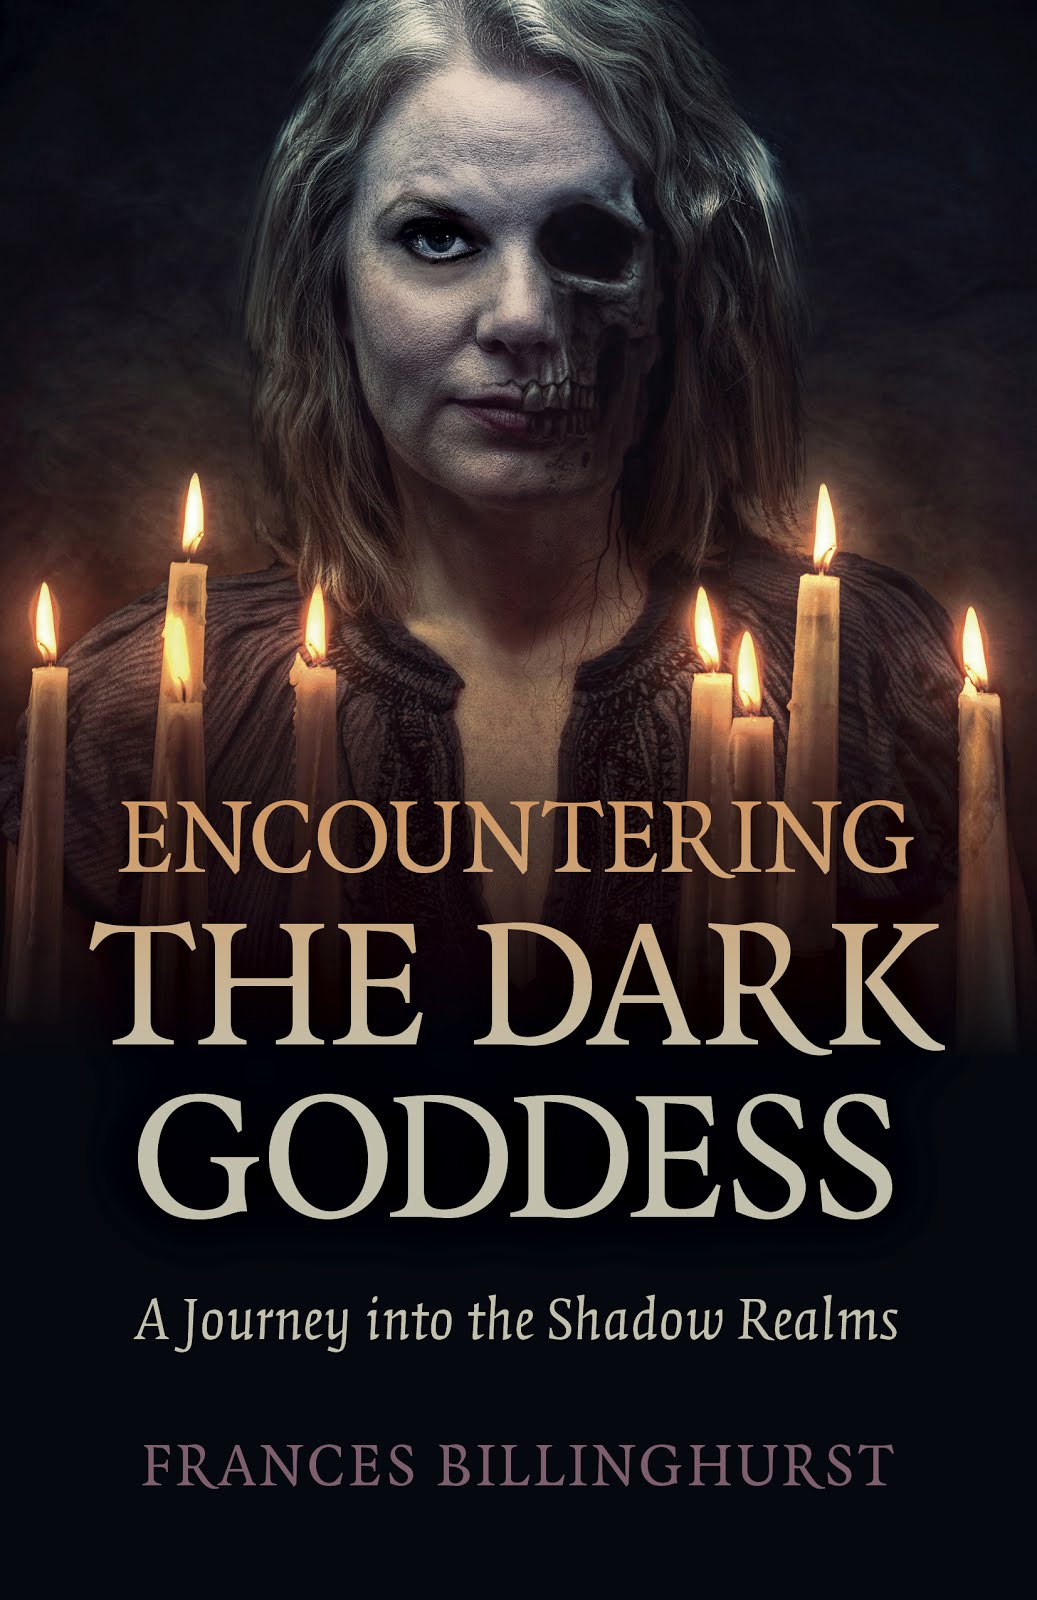 Encountering the Dark Goddess